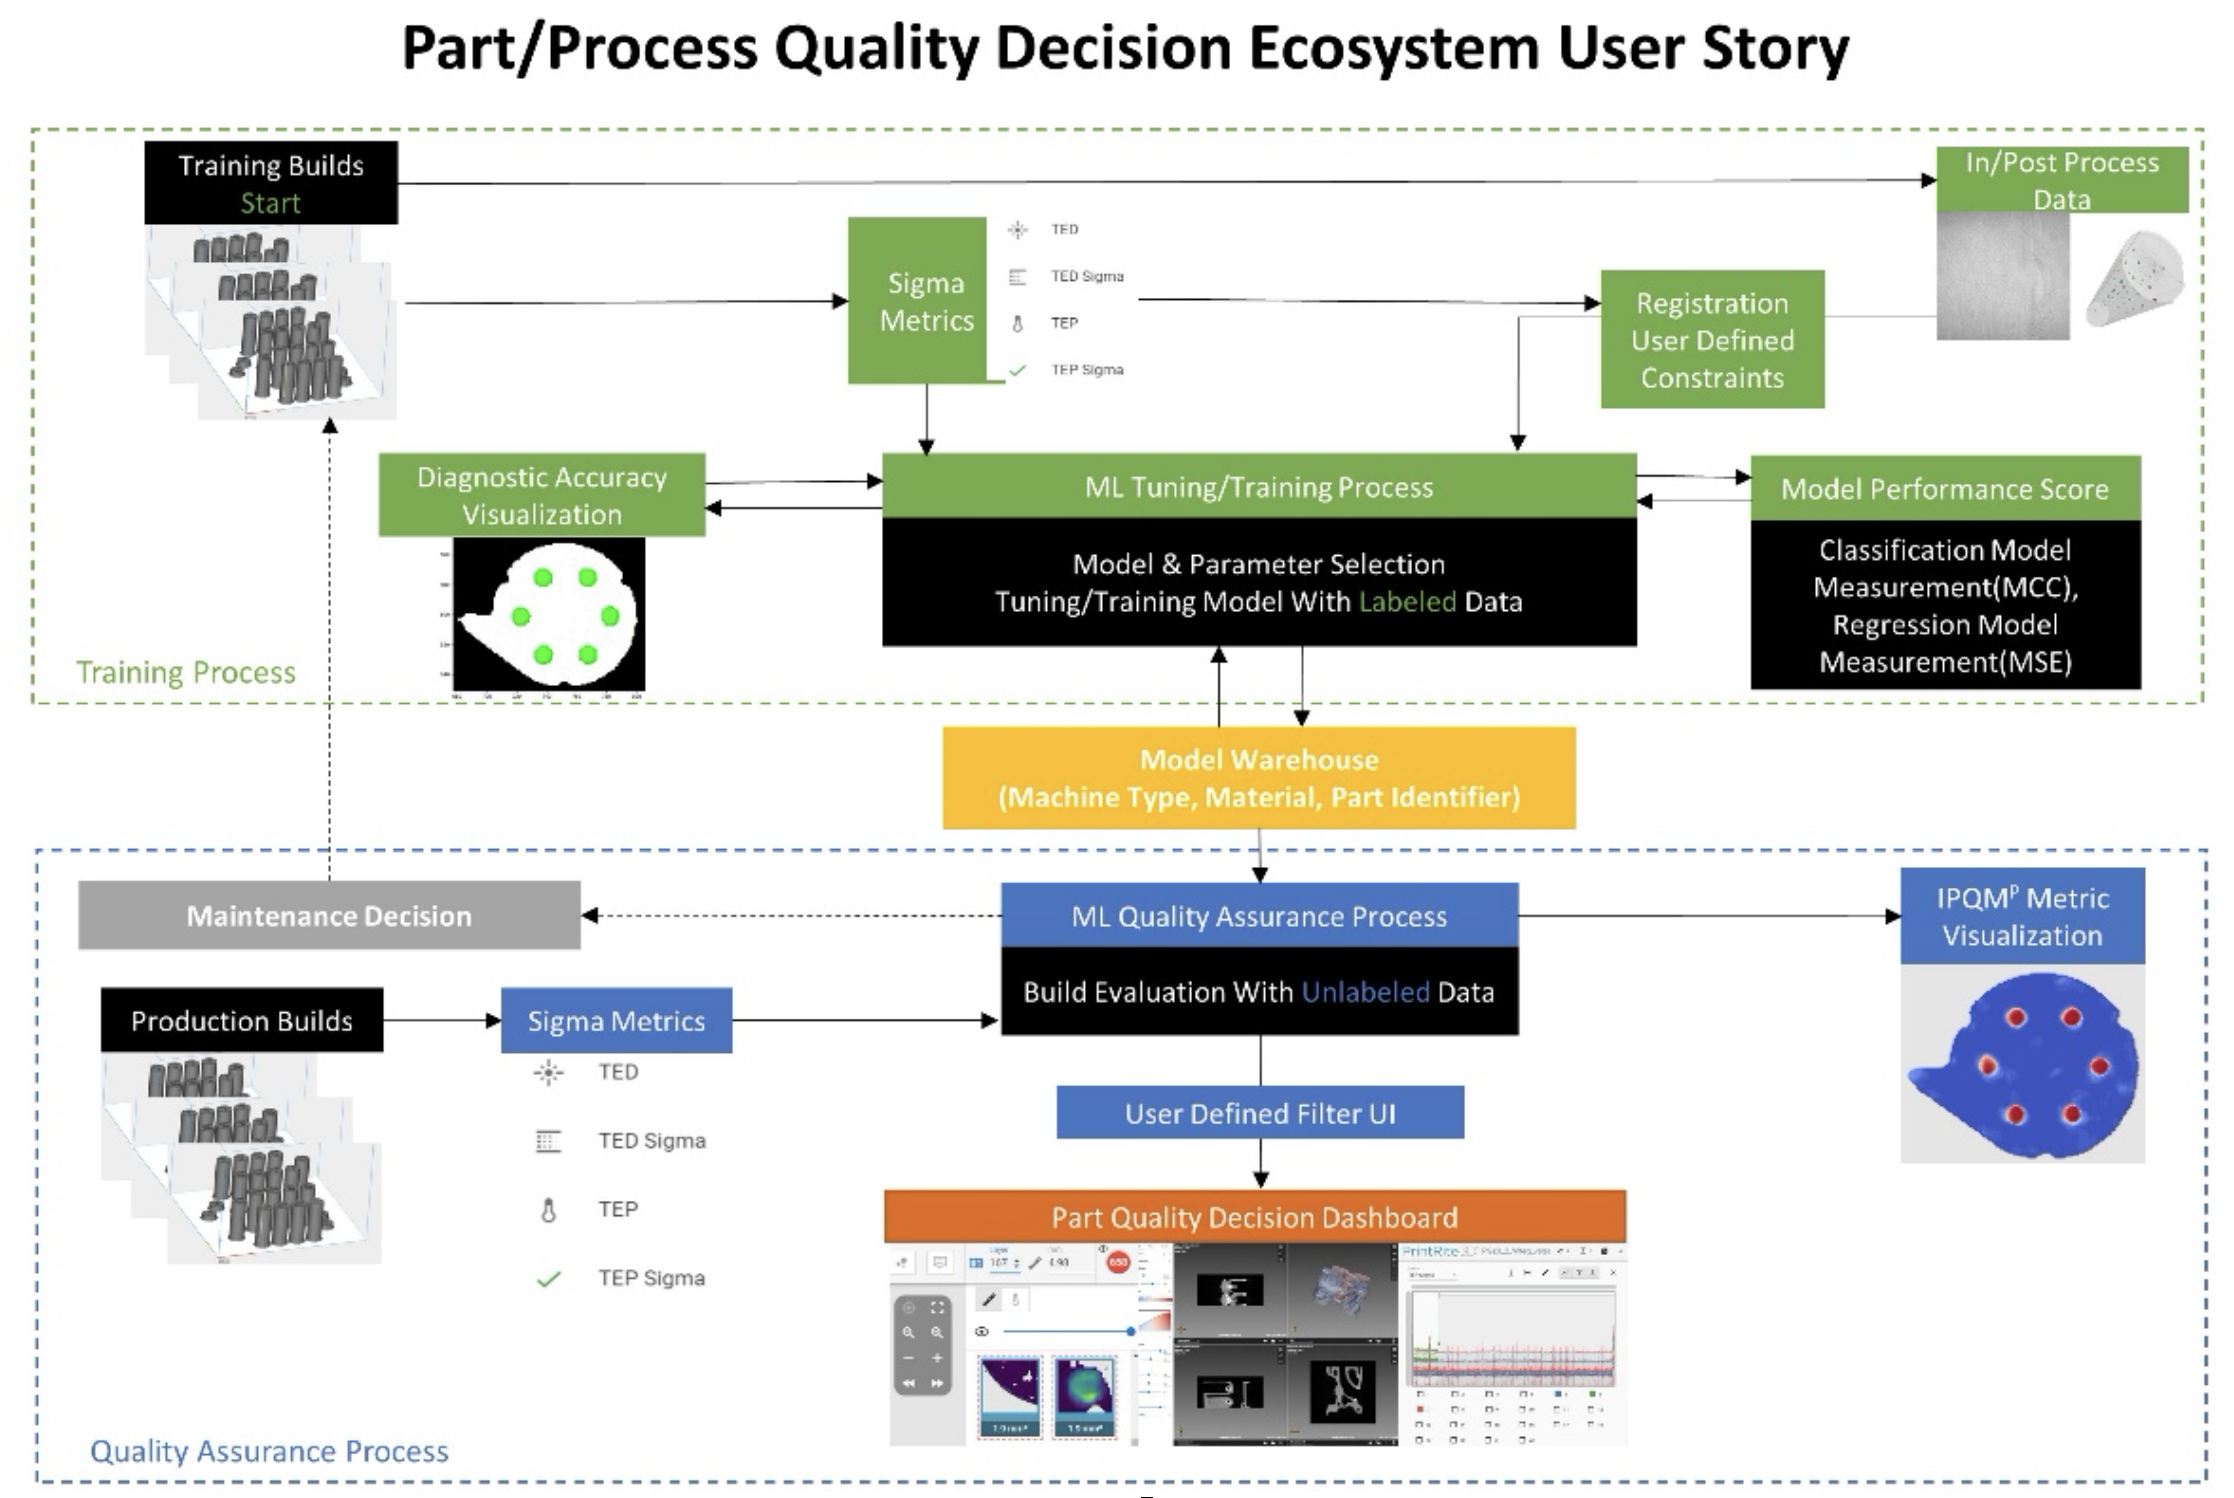 The Additive Manufacturing Parts/process Quality Ecosystem